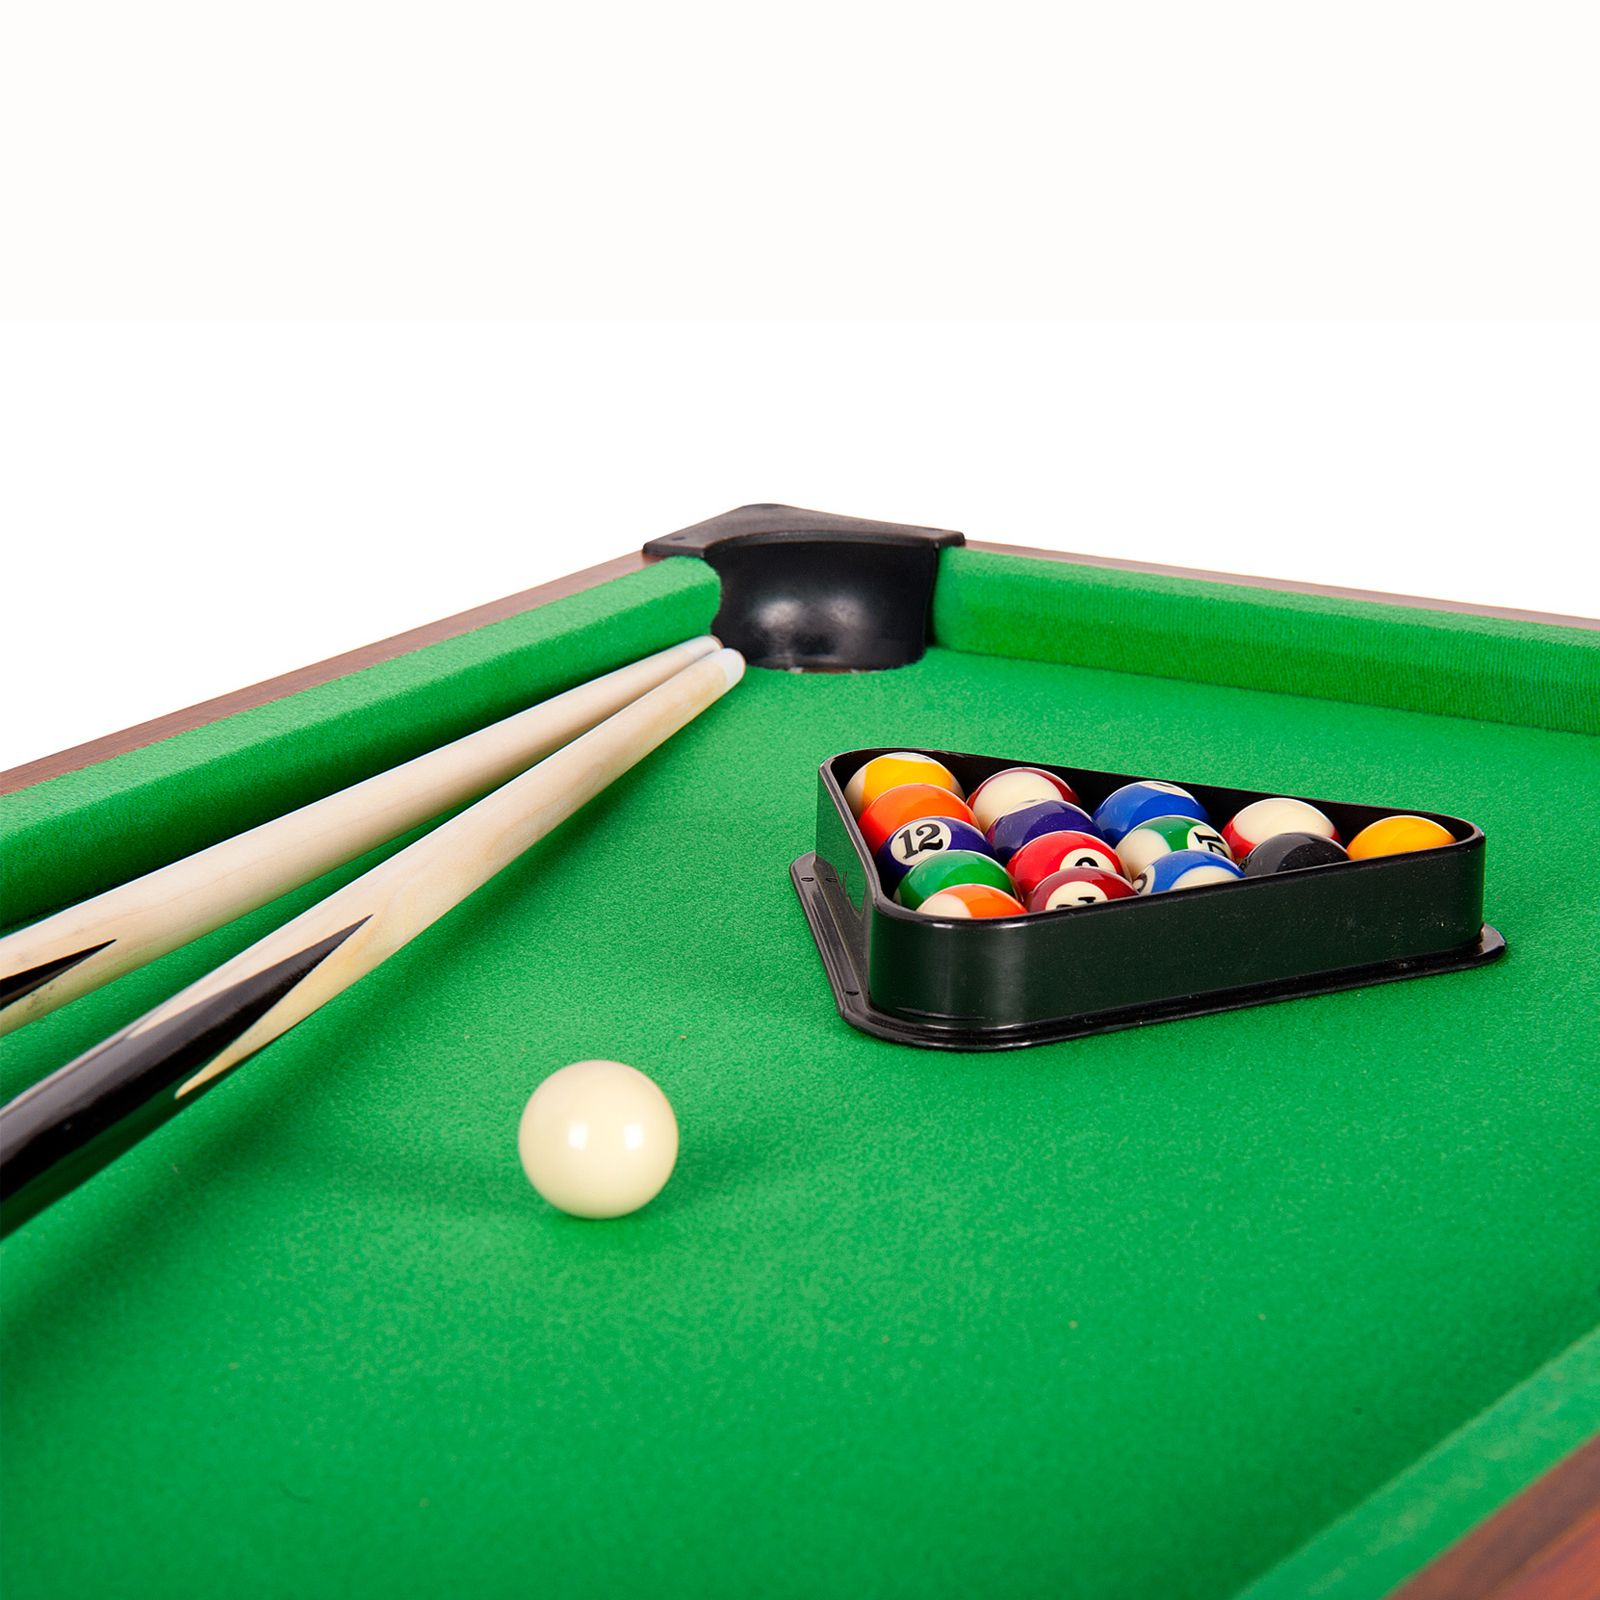 Portable piscine snooker table new jeux marrants sport for Piscine portable